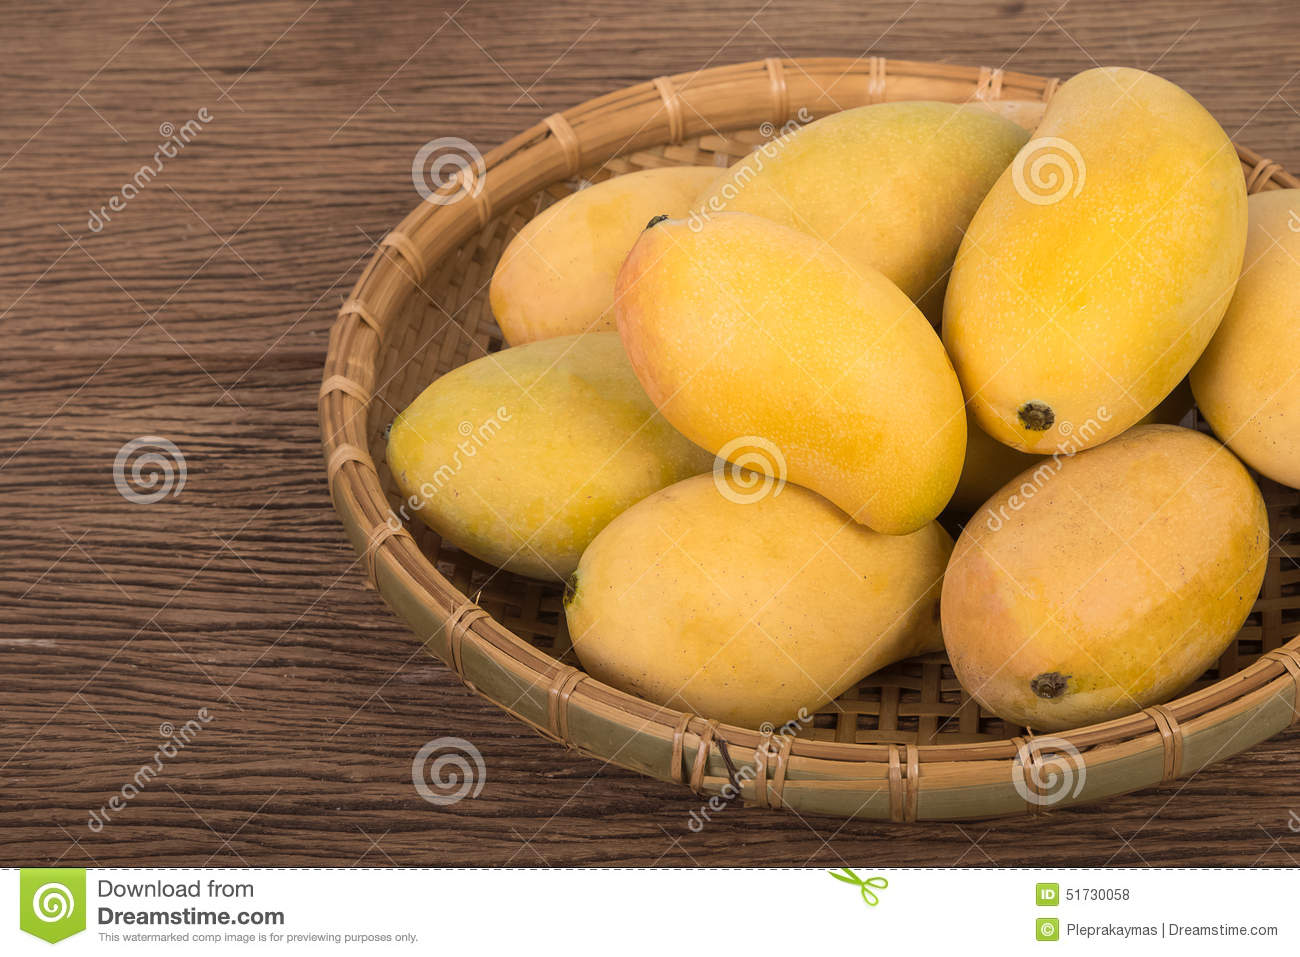 sale retailer best value lowest discount Fresh mango in the basket stock photo. Image of diet - 51730058